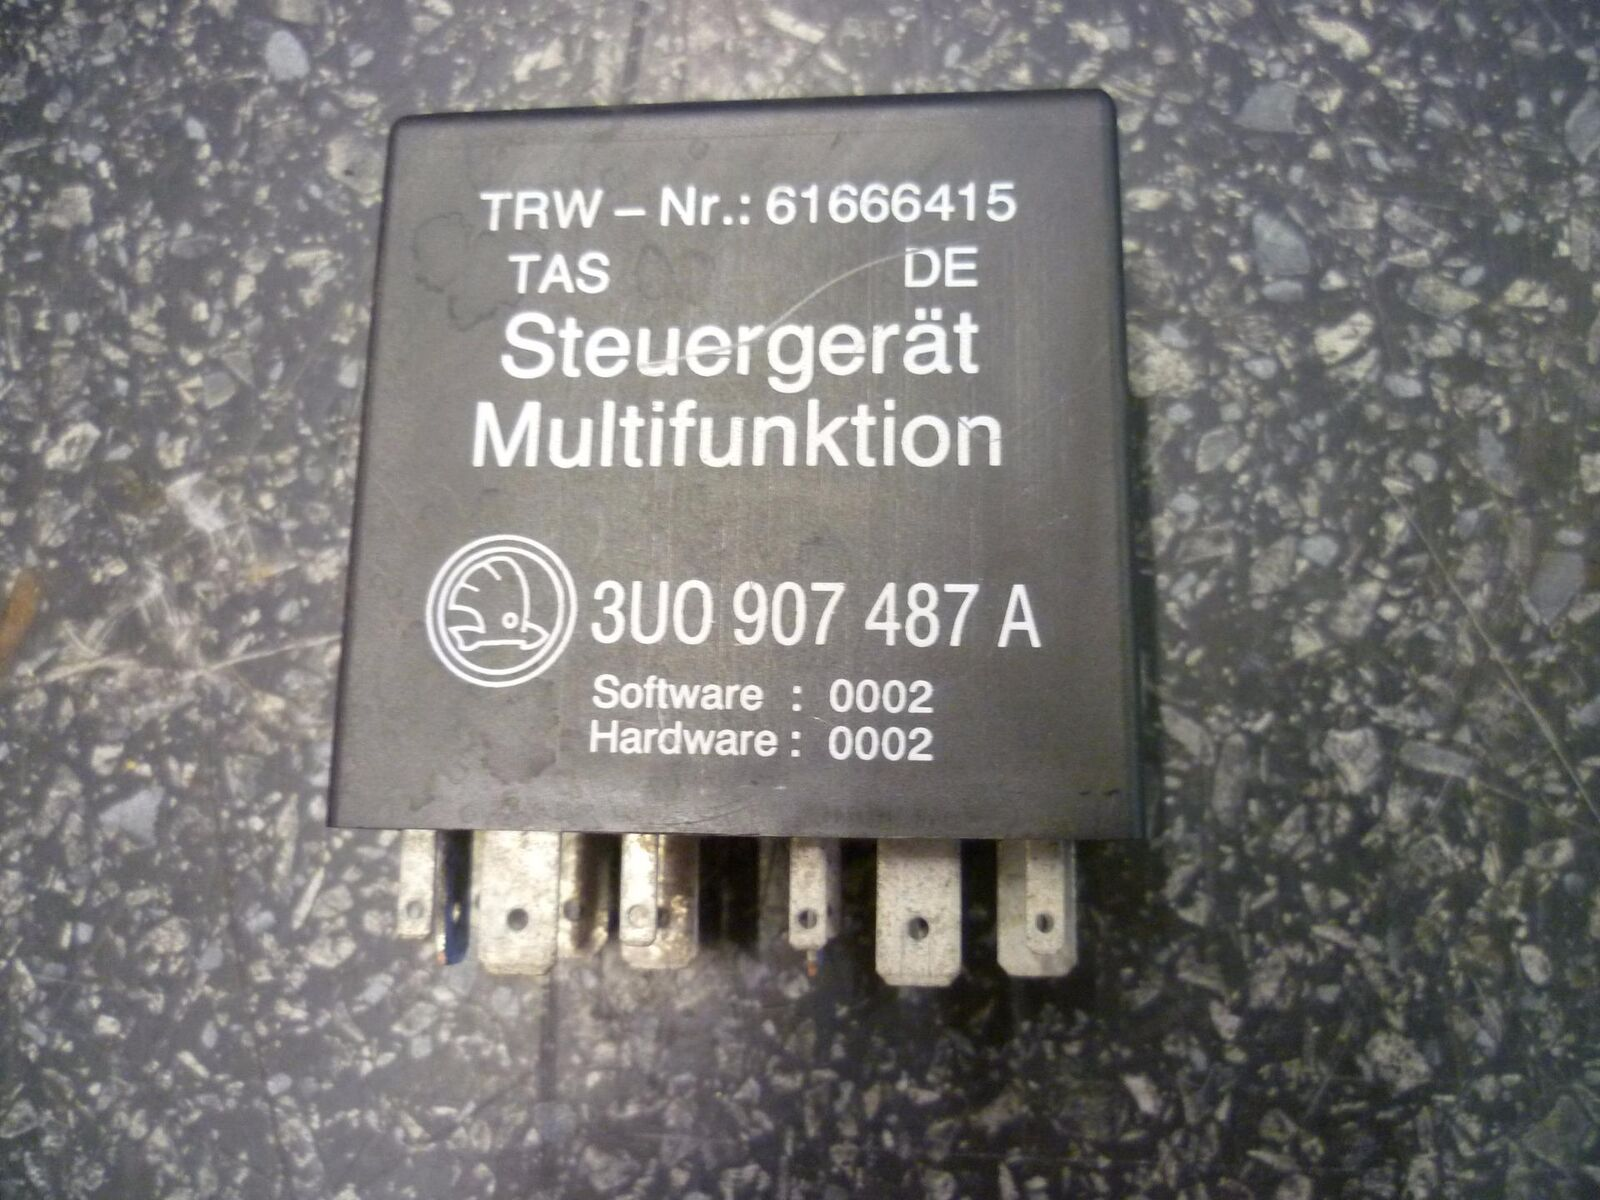 Skoda Superb Multi Function Steering Relay 3u0 907 487 A No 486 Estate Fuse Box 1 Of 1only Available